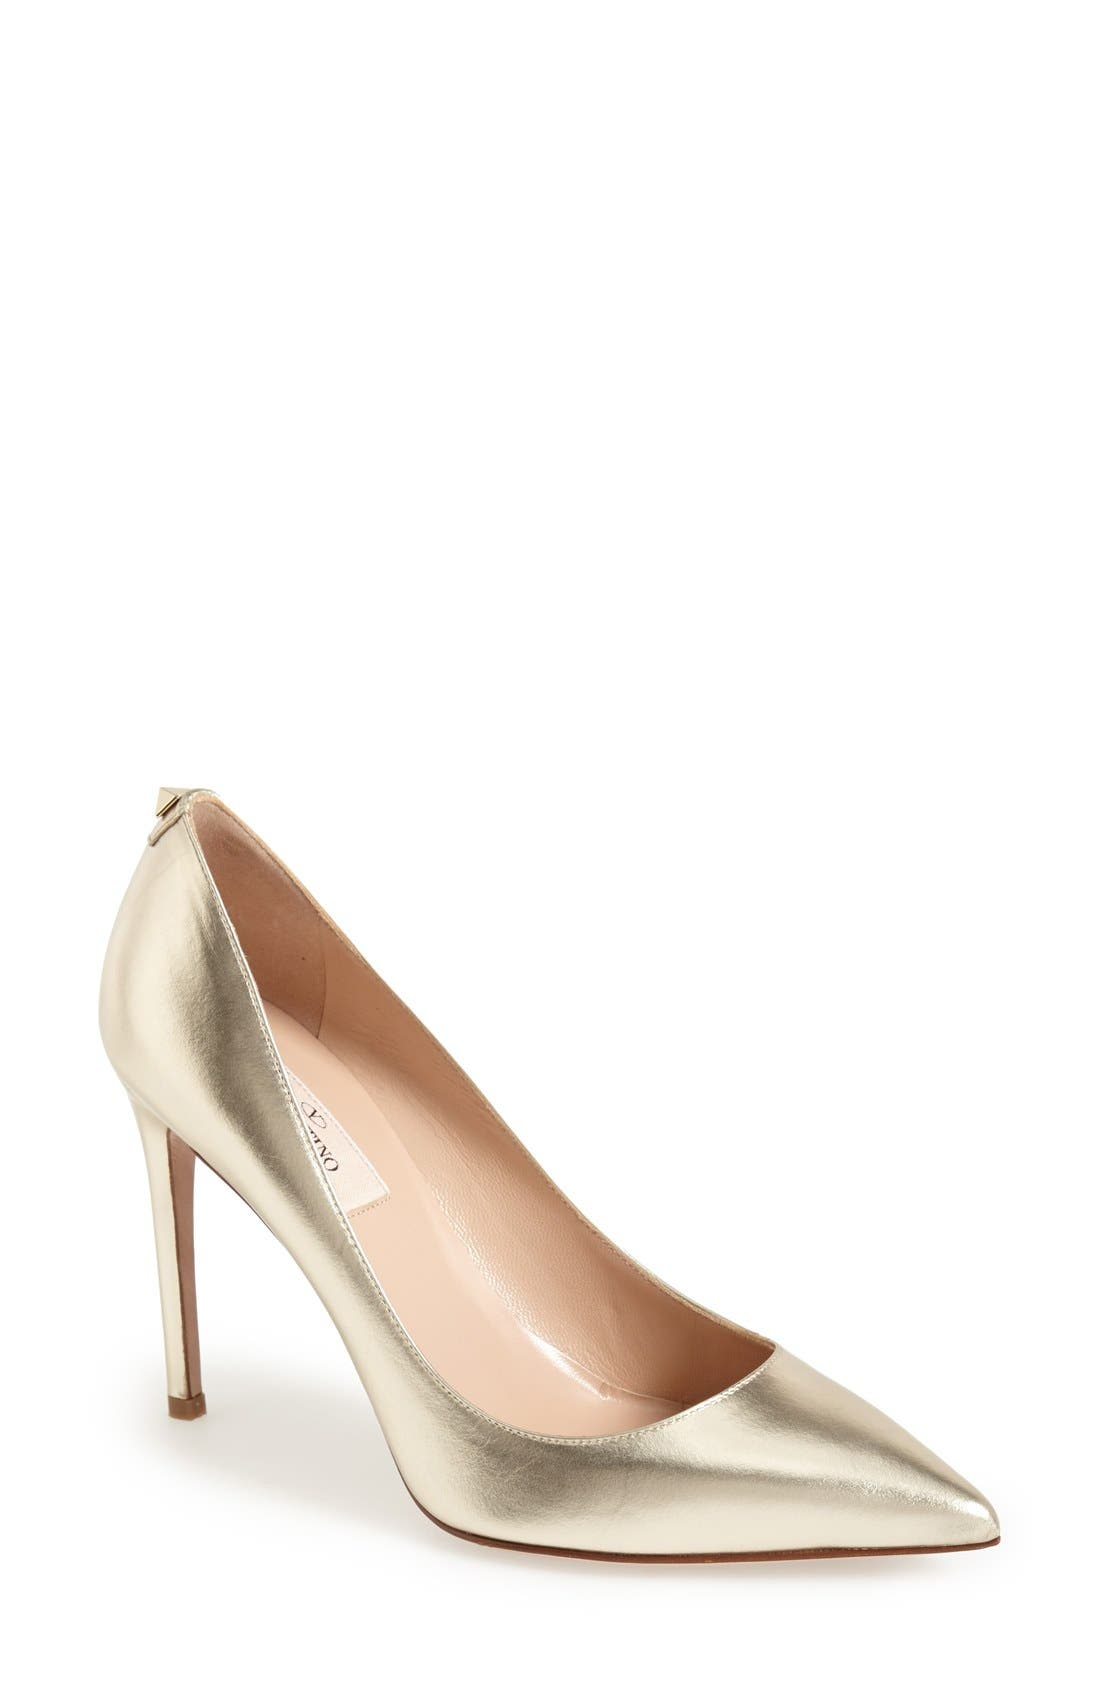 'Rockstud' Pump,                         Main,                         color, Platino